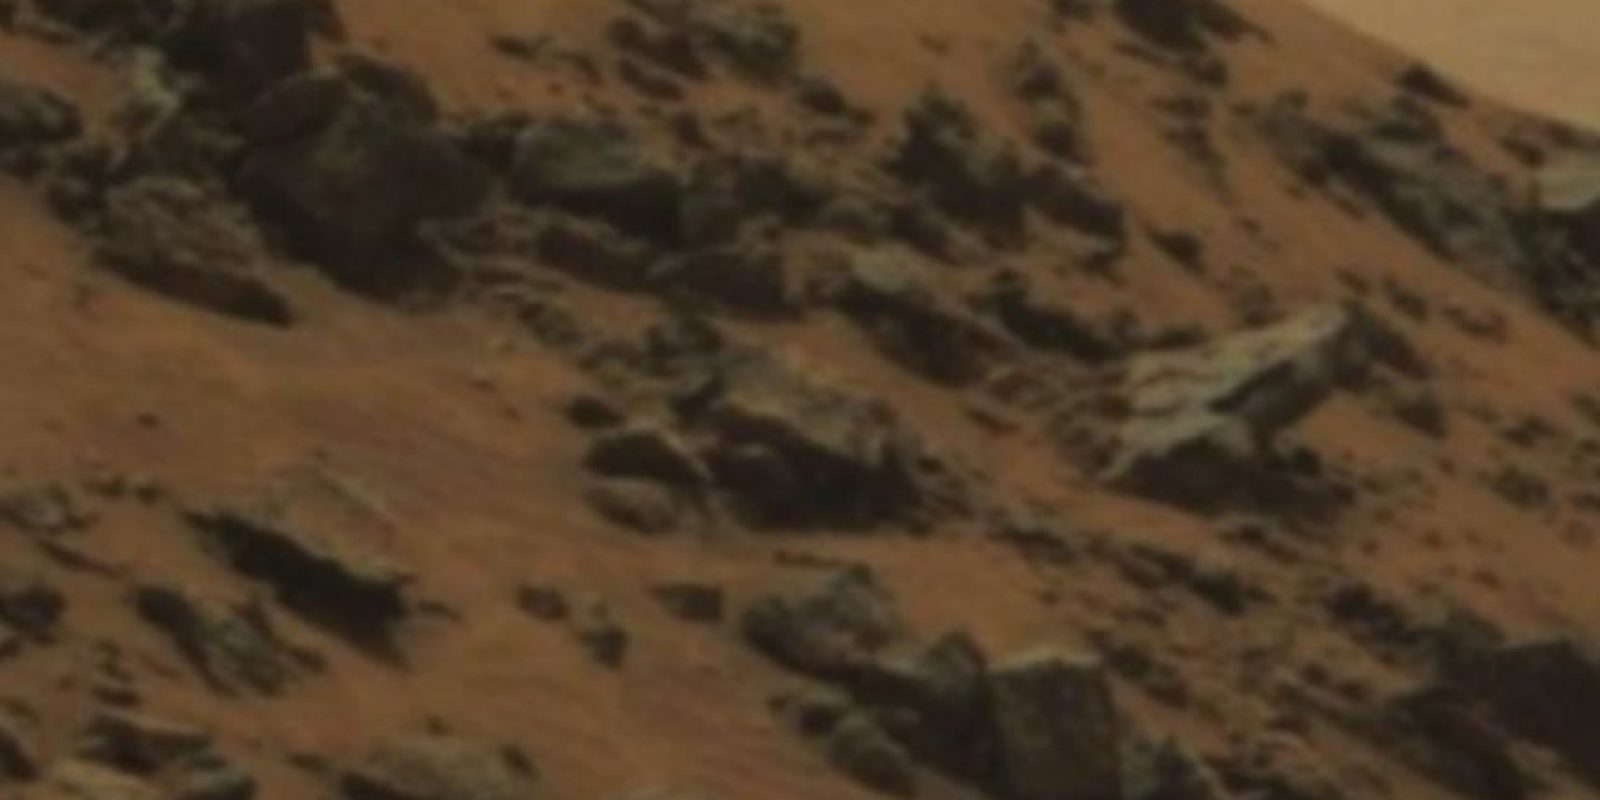 Fue descubierta en junio de 2015 Foto: http://mars.nasa.gov/msl/multimedia/raw/?rawid=0978MR0043250040502821E01_DXXX&s=978